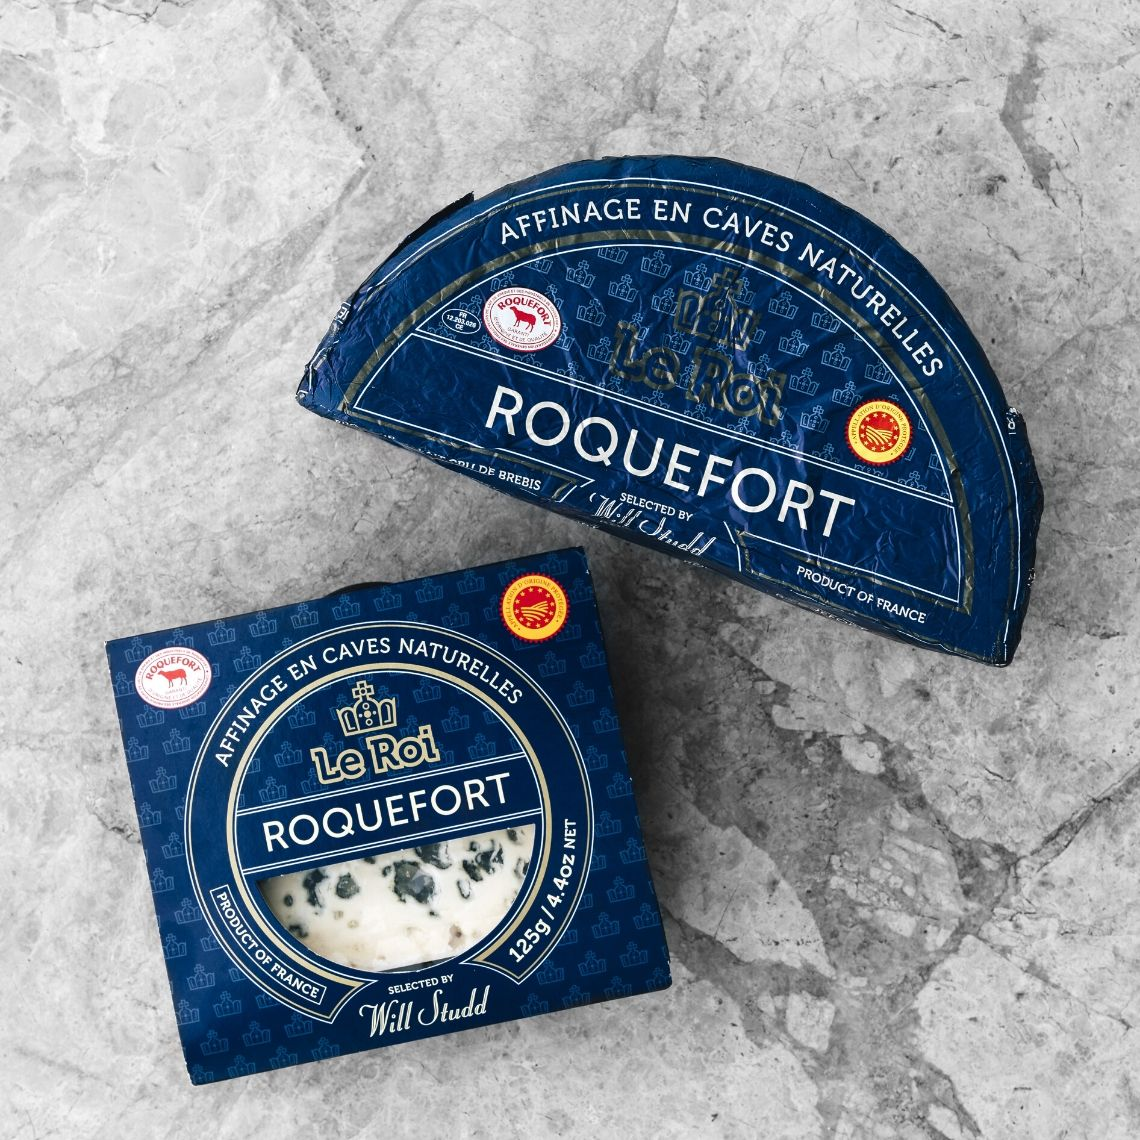 Le Roi roquefort packaging blue cheese French